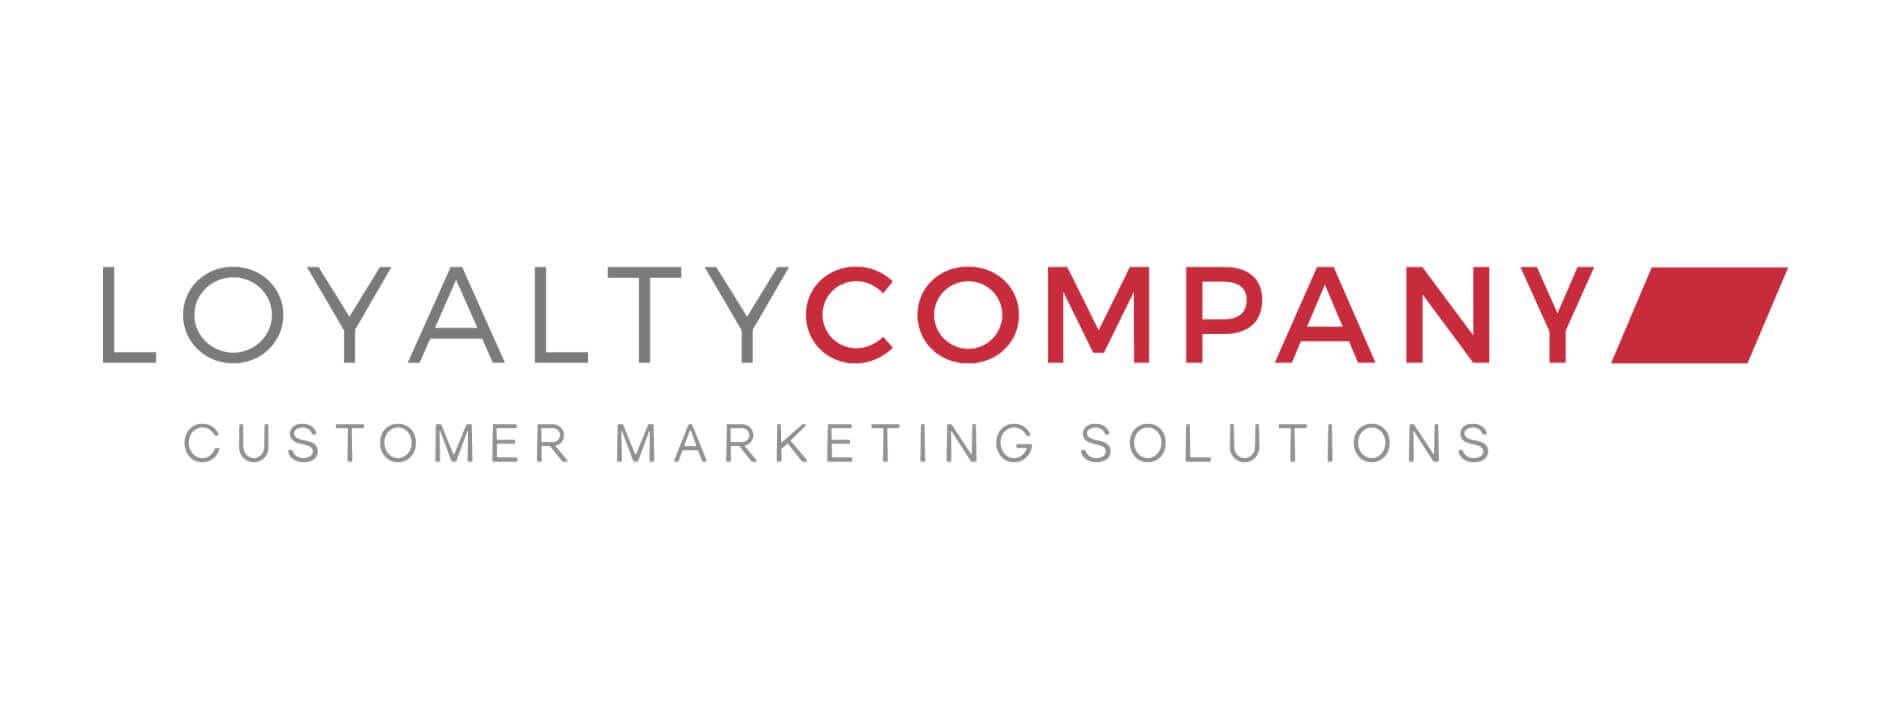 Loyalty Company